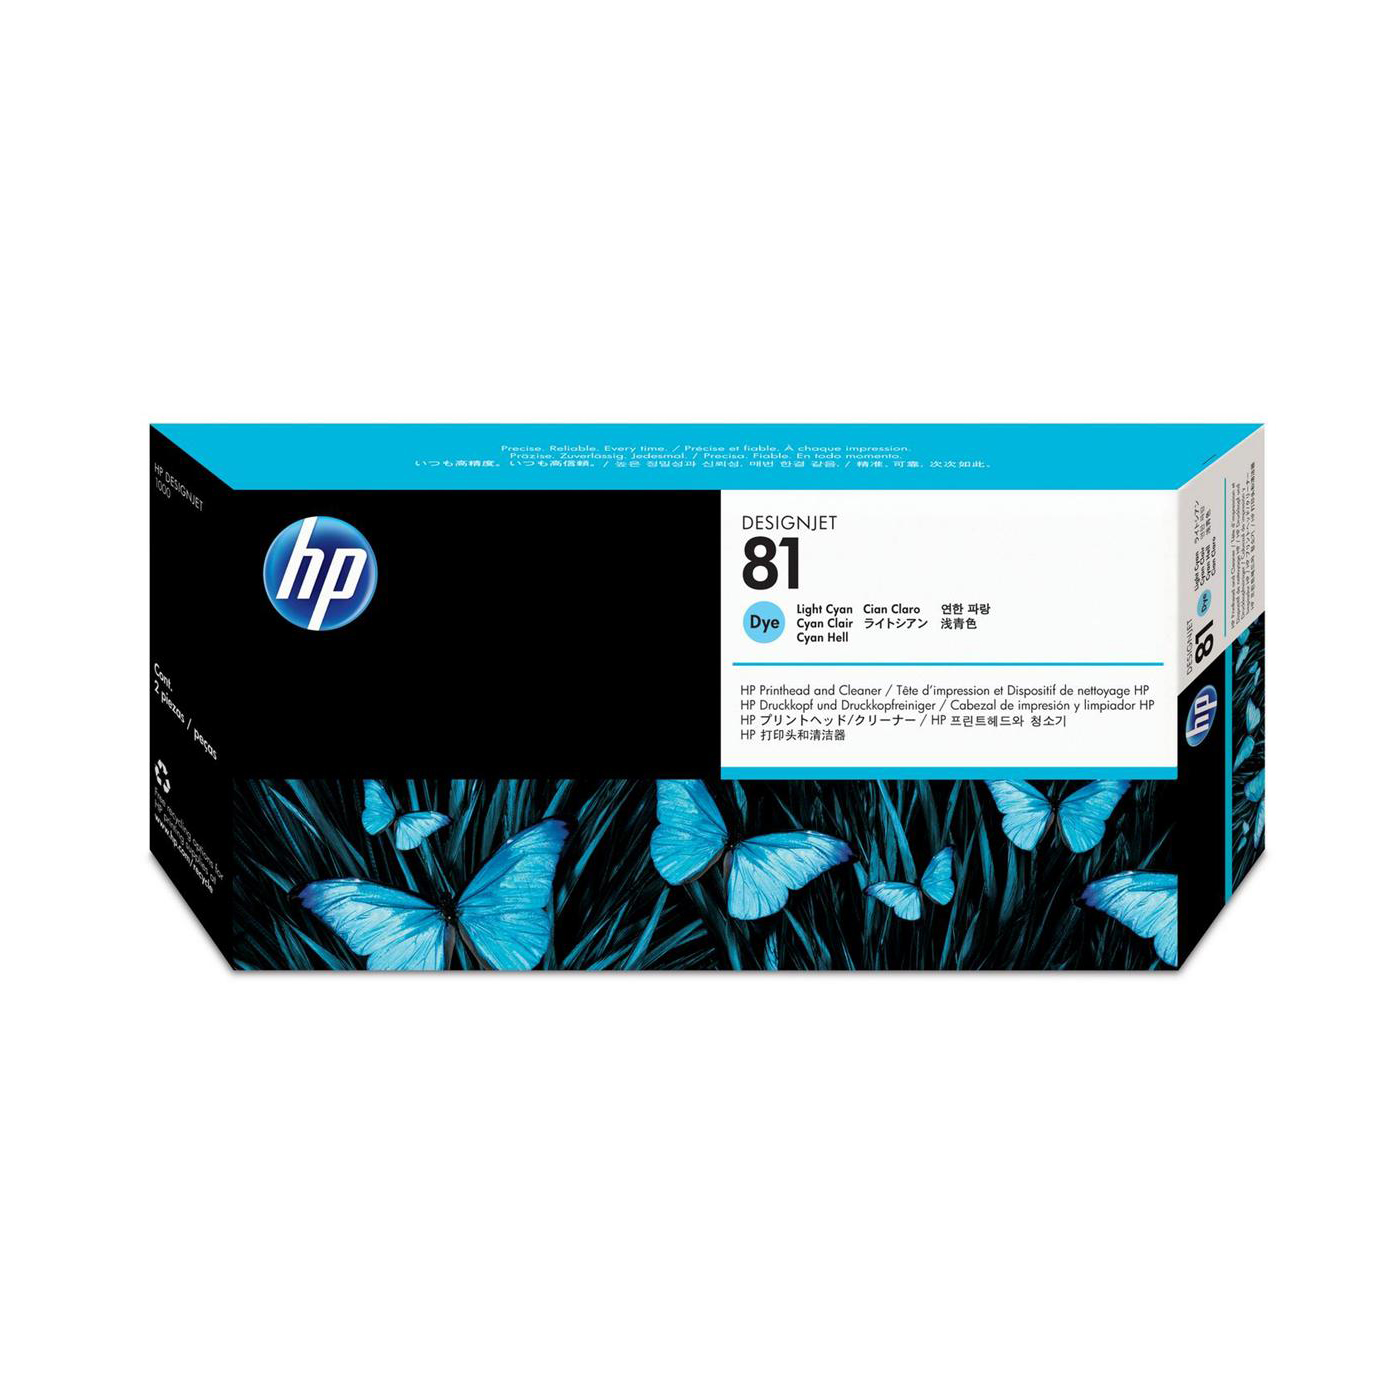 HP 81 Light Cyan Printhead & Printhead Cleaner for 5000 & 5000PS Ref C4954A 3 to 5 Day Leadtime